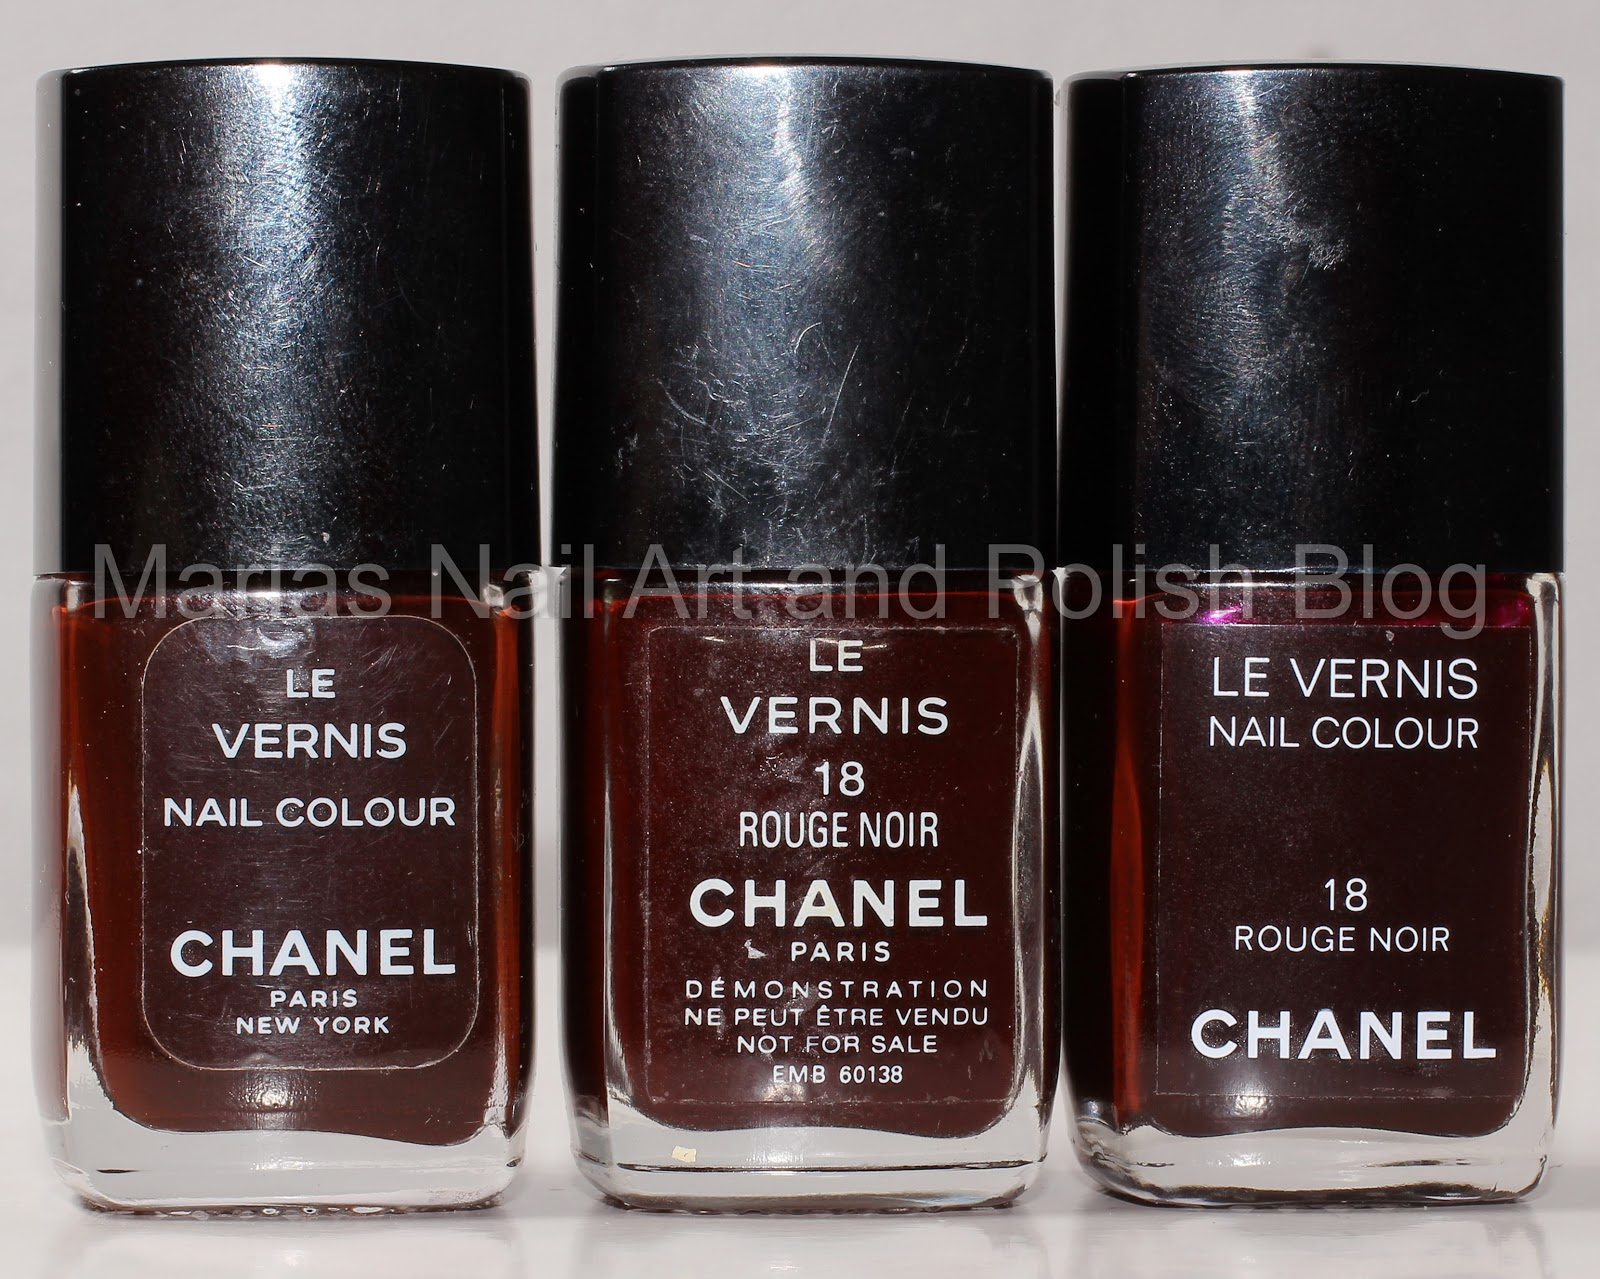 Marias Nail Art and Polish Blog: Chanel Rouge Noir 18 - Vamp 18, 5 x ...